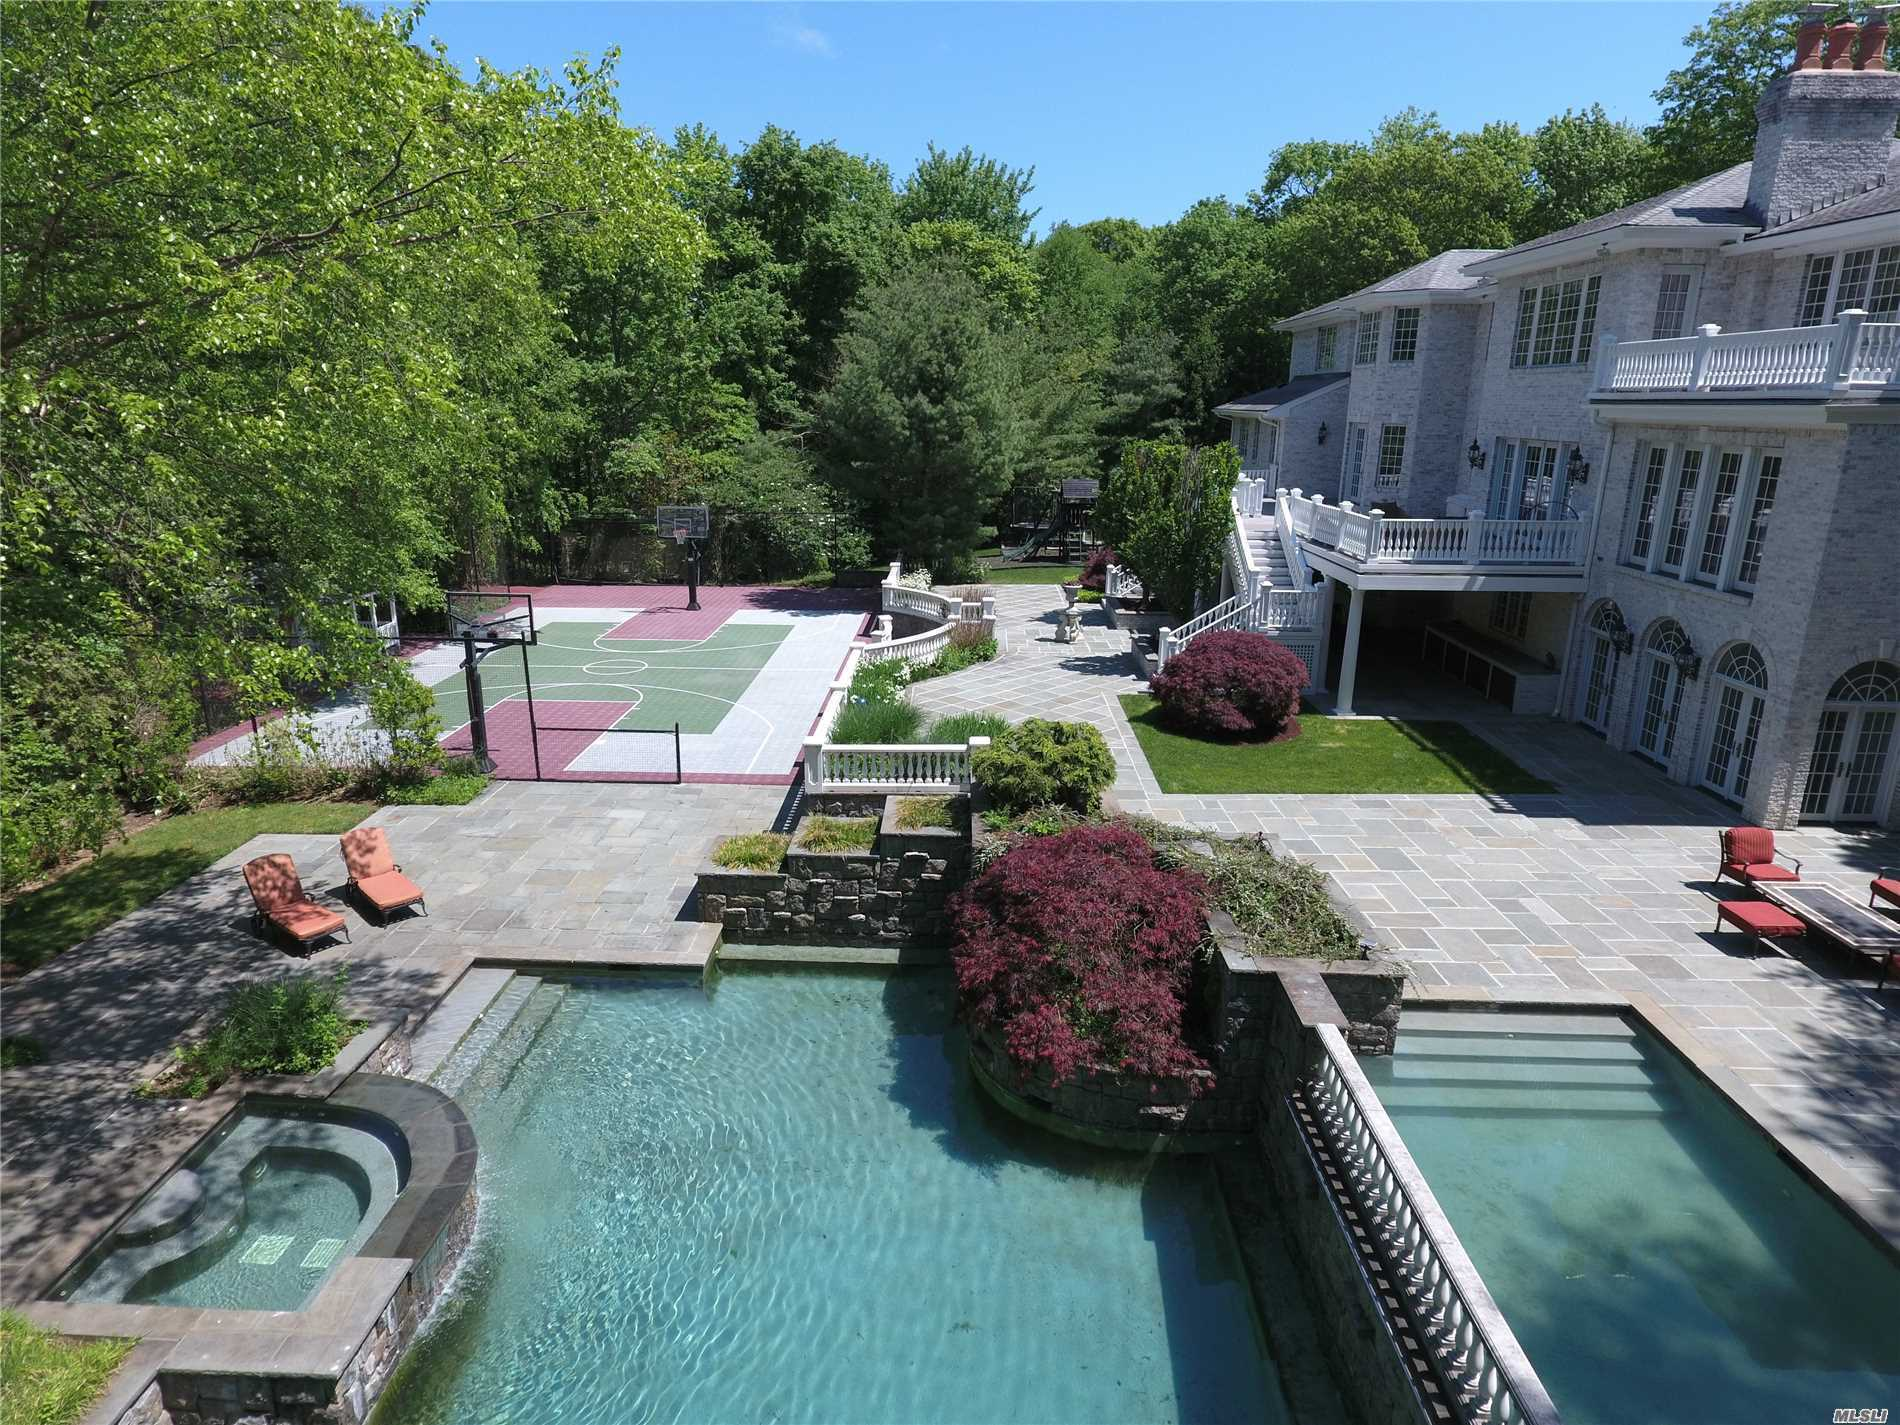 Inc Village Of Oyster Bay Cove, Ny. Premier Tall Oaks Community. Stunning One Of A Kind Grand Estate Offering Resort Style Living, 6 Bedrooms, 7.5 Bathrooms, Many Fabulous Features And Details Incl. Chef's Kitchen, Luxe Master, Fabulous Media Room, Gym, Wine Cellar And Cabana. Set On 4 Spectacular Private Acres With 2 In-Ground Pools, Sport Court, Patio & Gardens. Csh Sd#2.